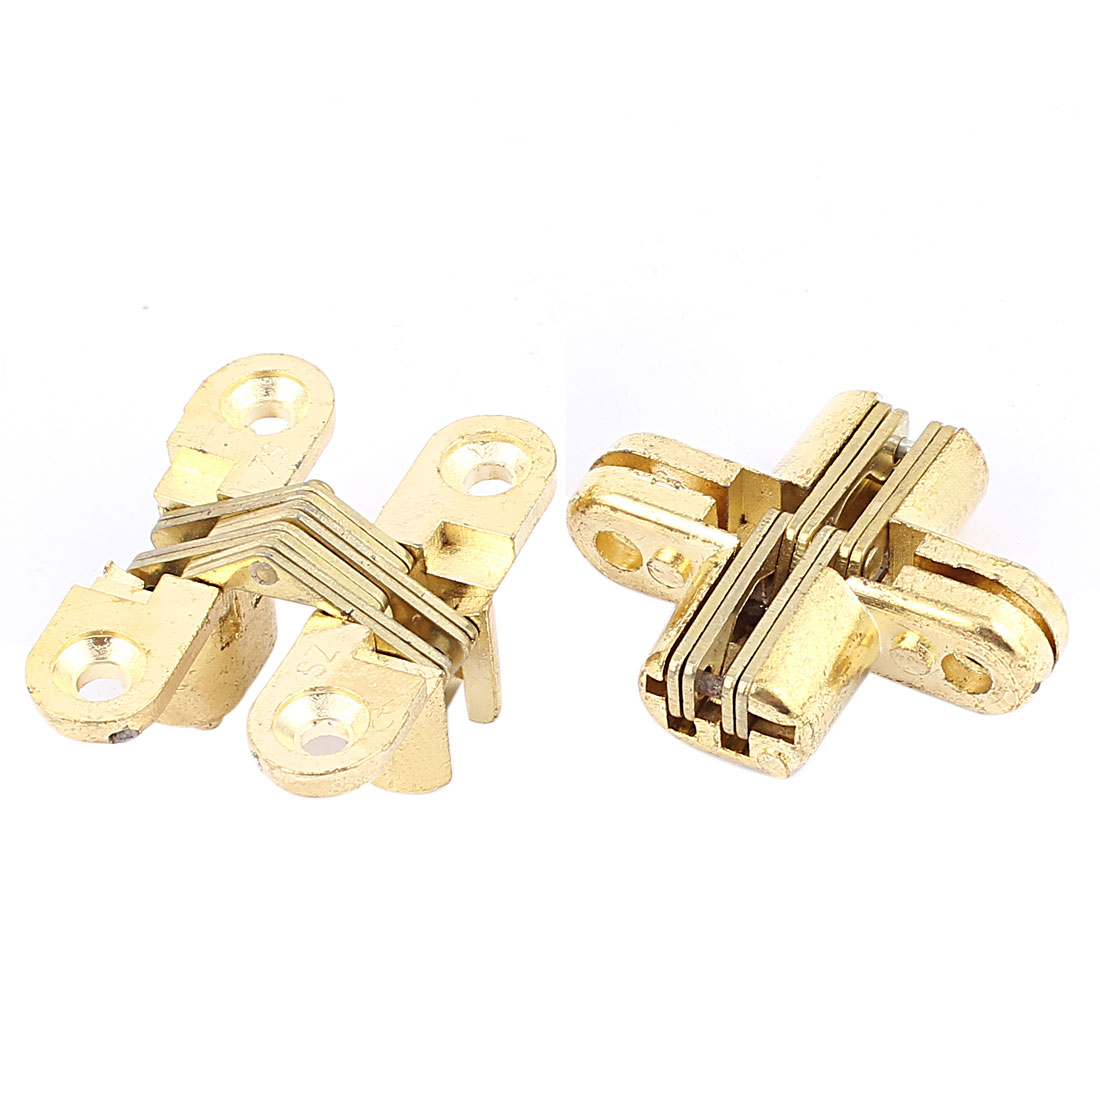 2pcs Gold Tone Metal Folding Sliding Door Cabinet Cupboard Furniture Cross Hinge